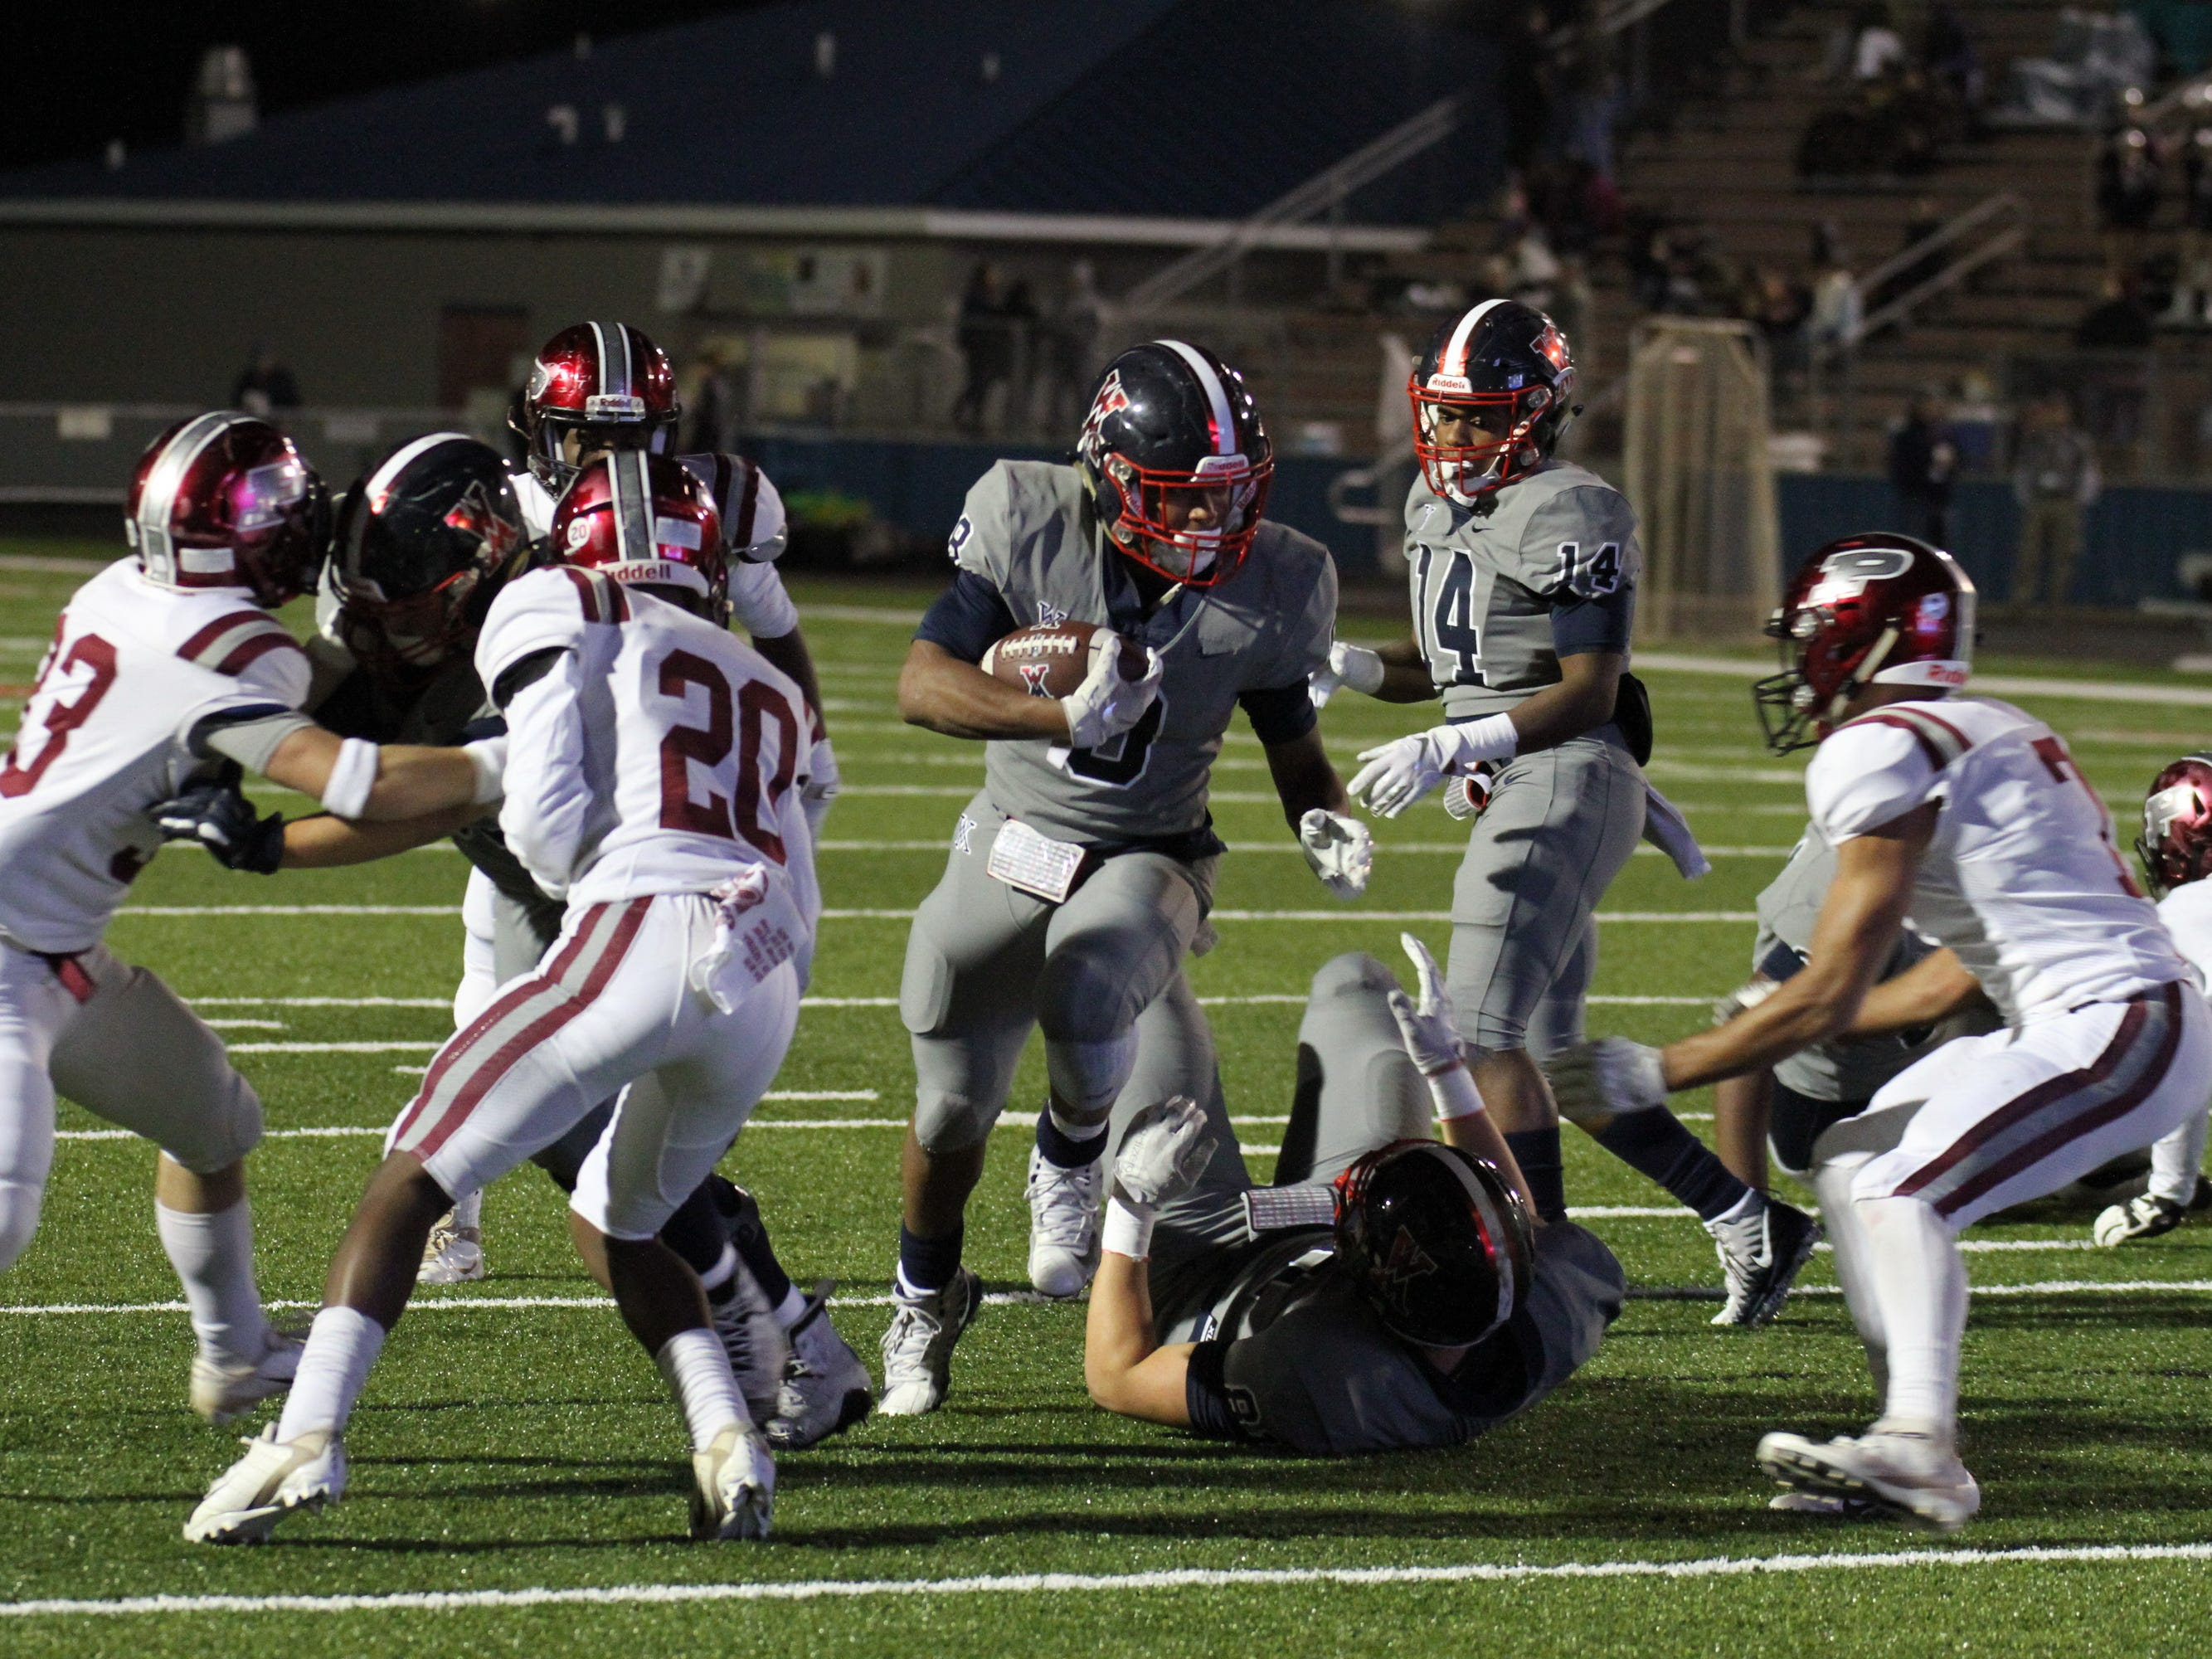 West Monroe blanks Pineville 53-0 to advance to the second round of the playoffs.